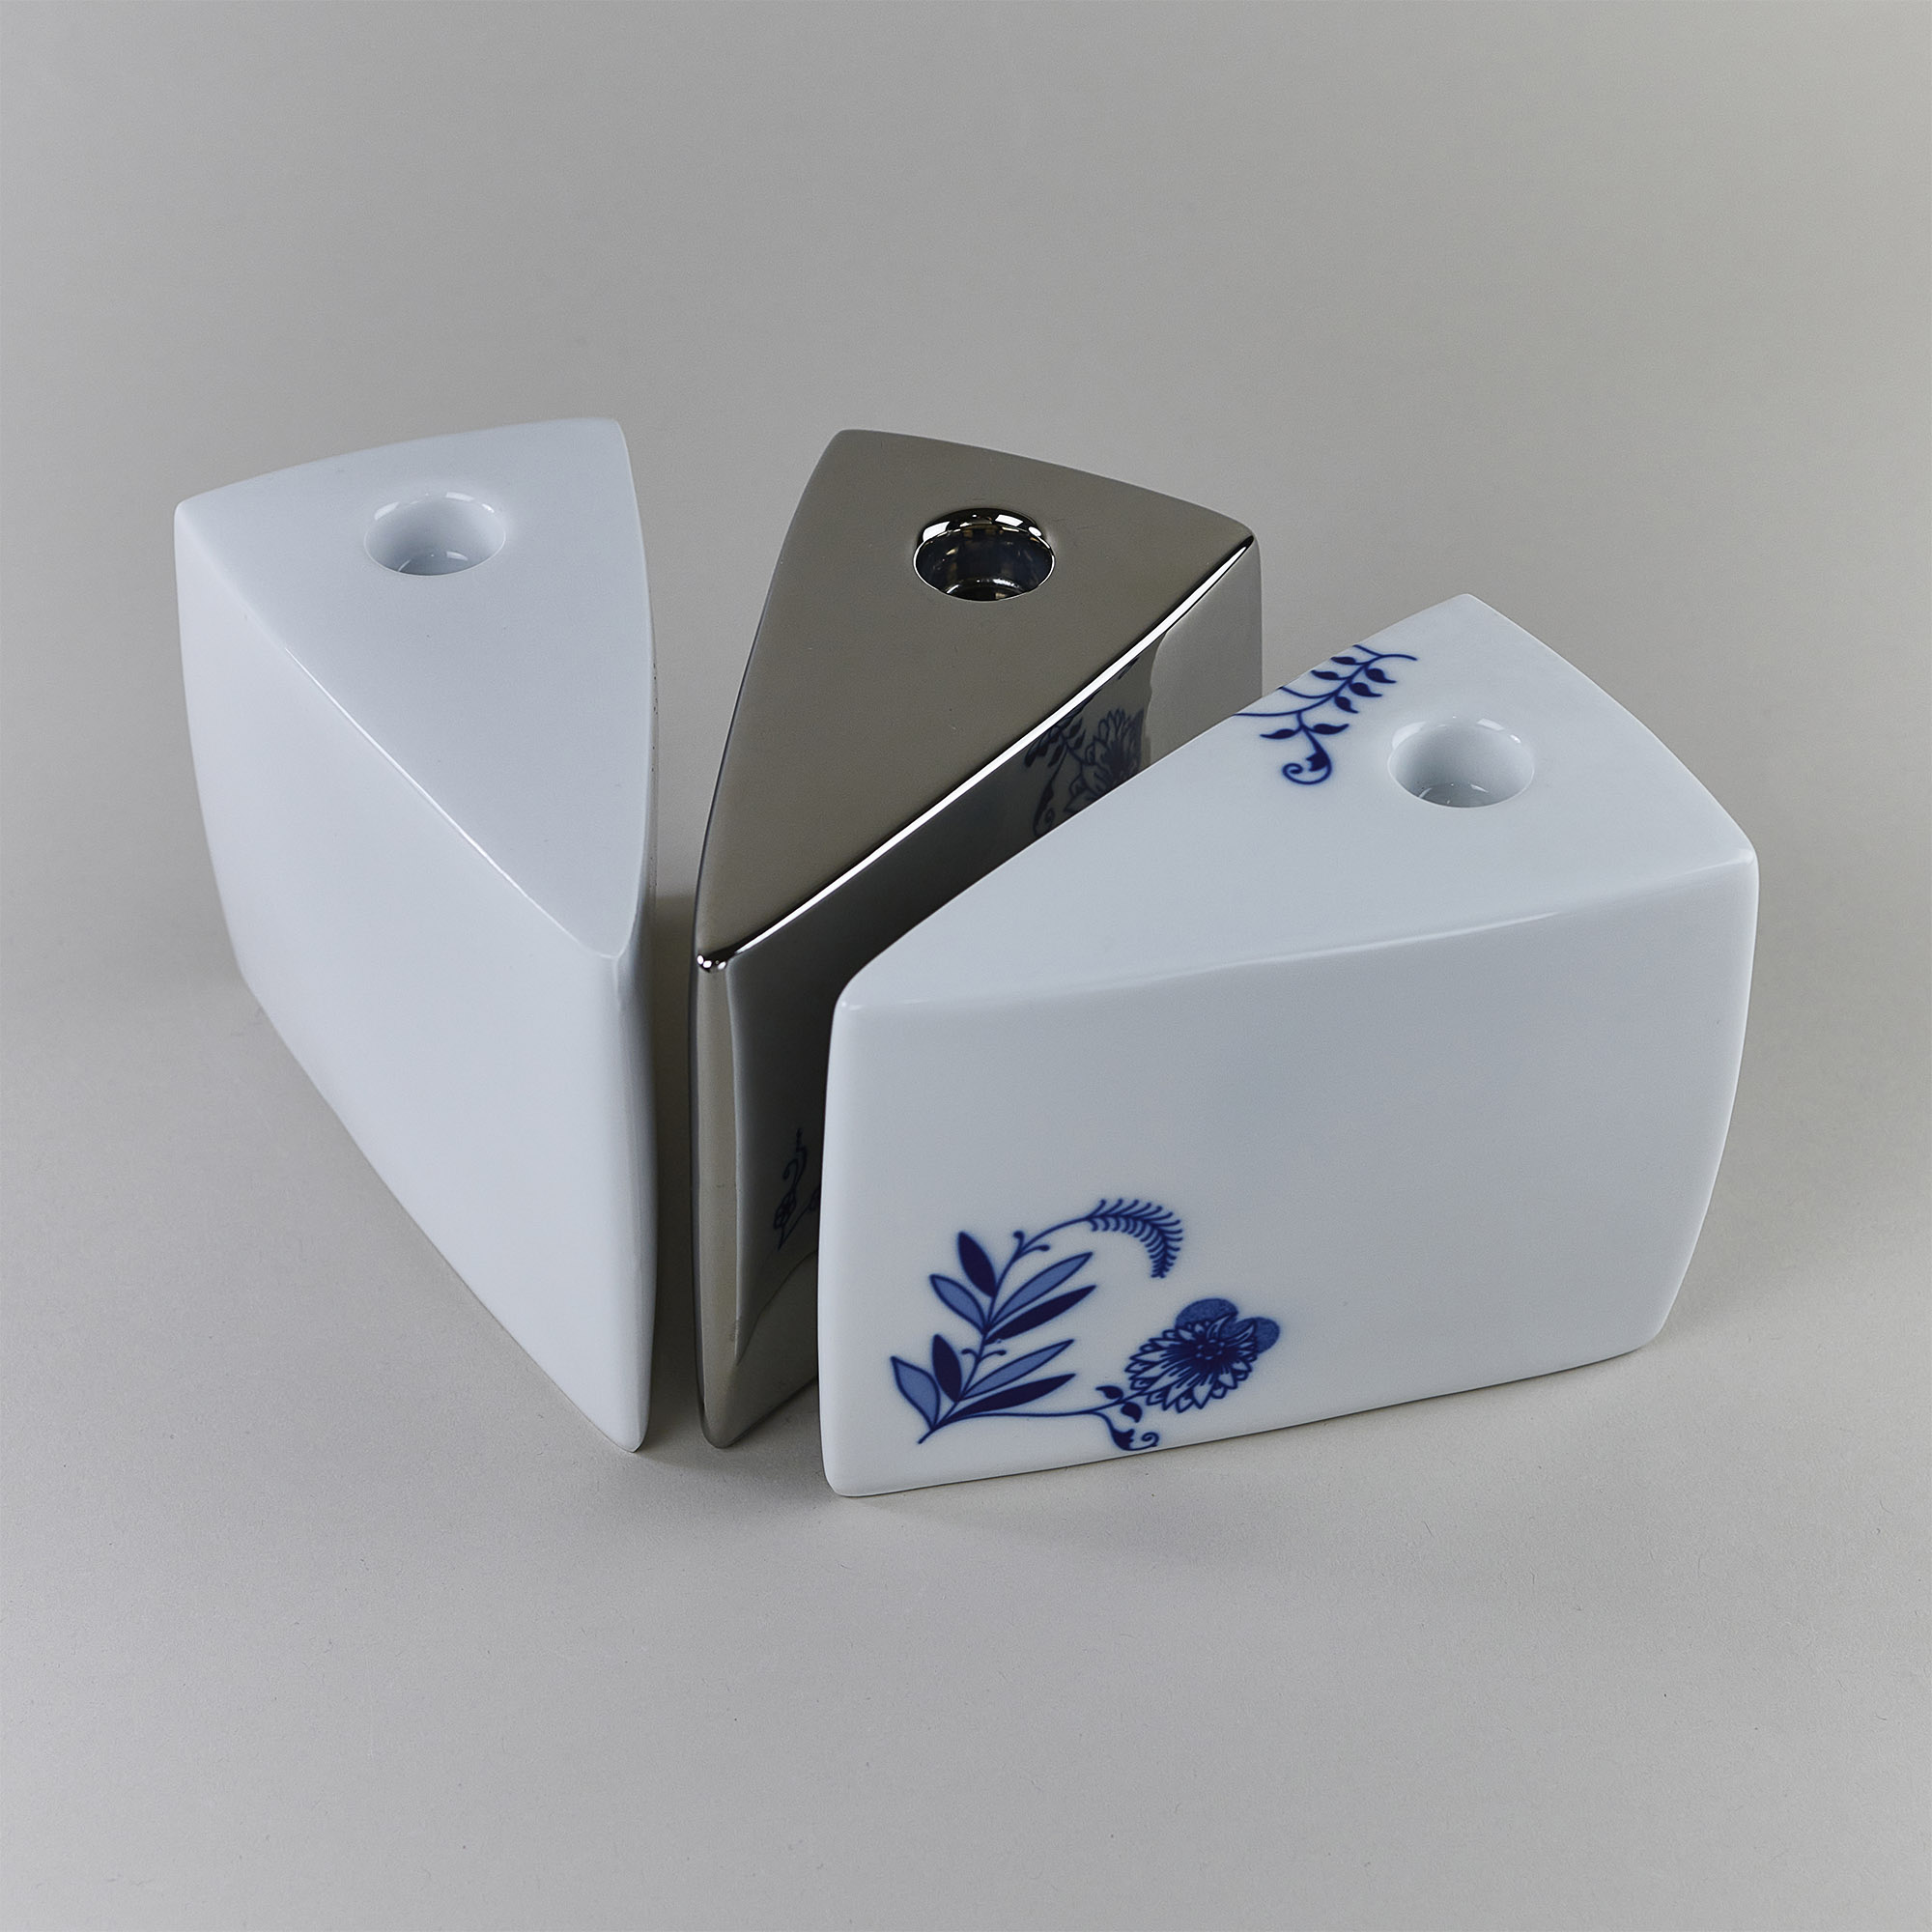 White, silver and onion pattern porcelain candleholder in a shape of a piece of cake by Qubus design studio